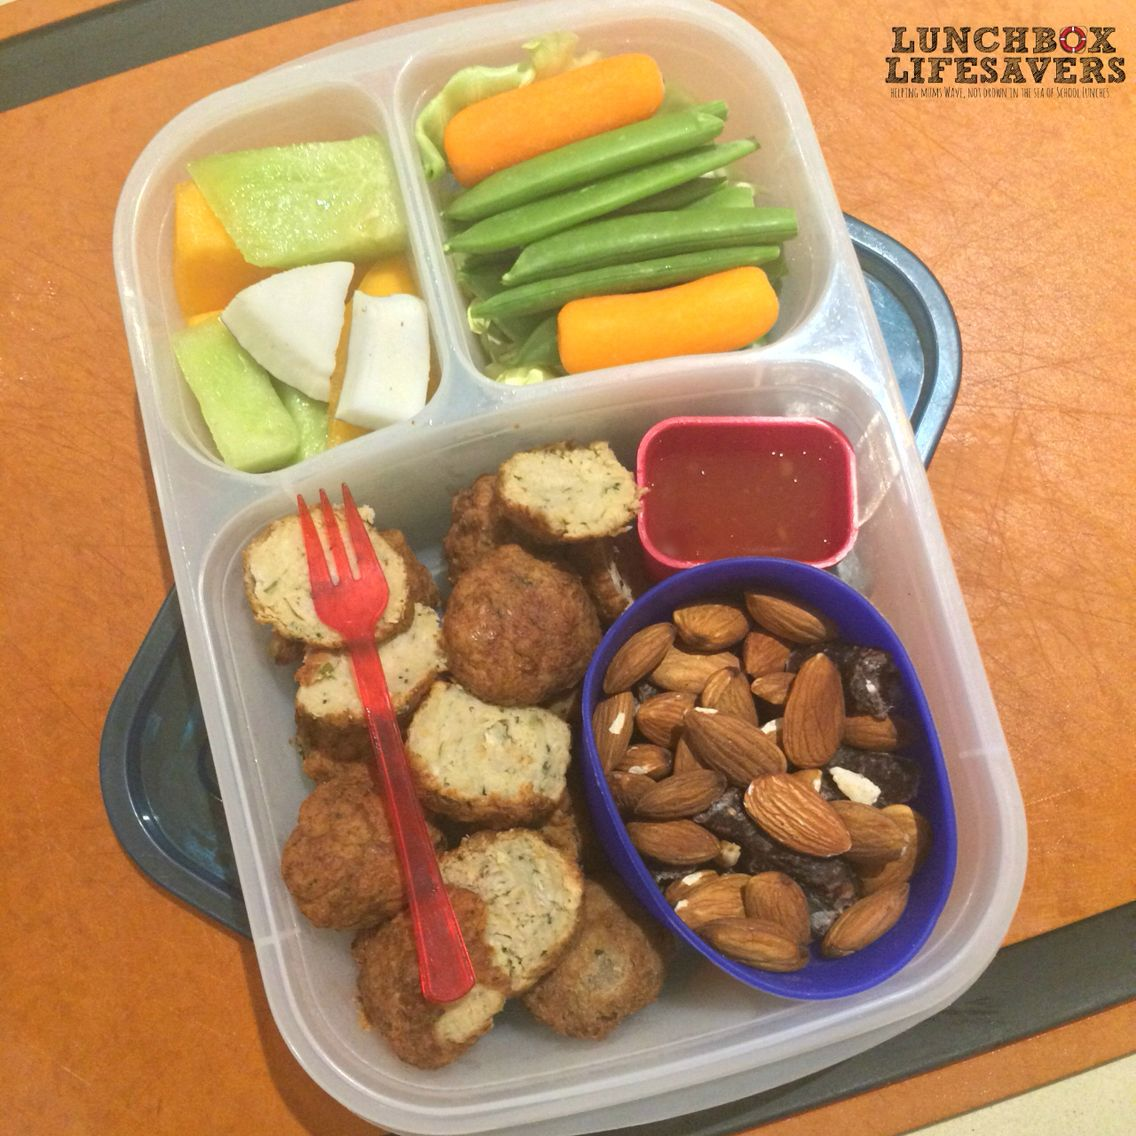 Oh my word! Where do active teenage boys put all this?!! This protein-packed lunch was prepped under Tyson's guidance last night for a busy day today.  *** Frikadels, nuts & dry wors sausage, with fruit & veg. And there's a bag of popcorn to snack on for before his afternoon sport!! #ActiveGrowingKidsNeedFuel ⚽️⛳️